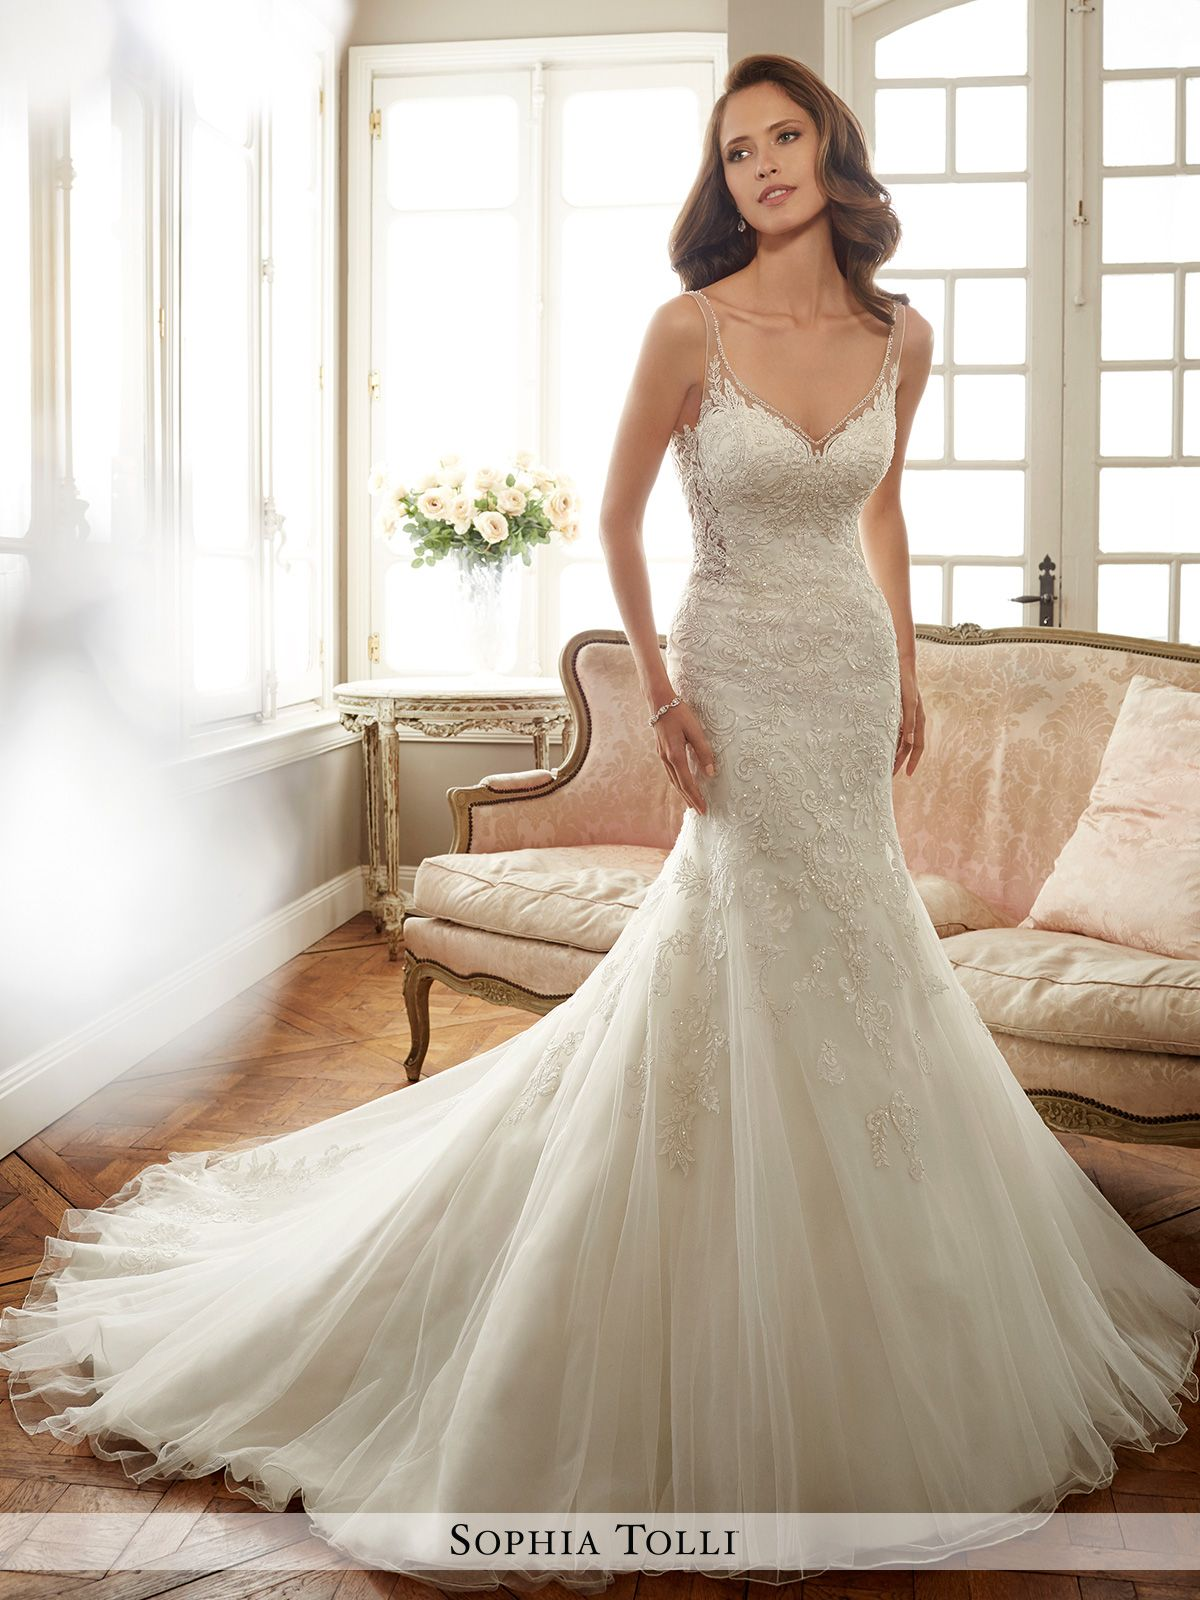 Sweetheart Flare Wedding Dress Line Lace Fit Tulle And Soft Neckline Embellished And